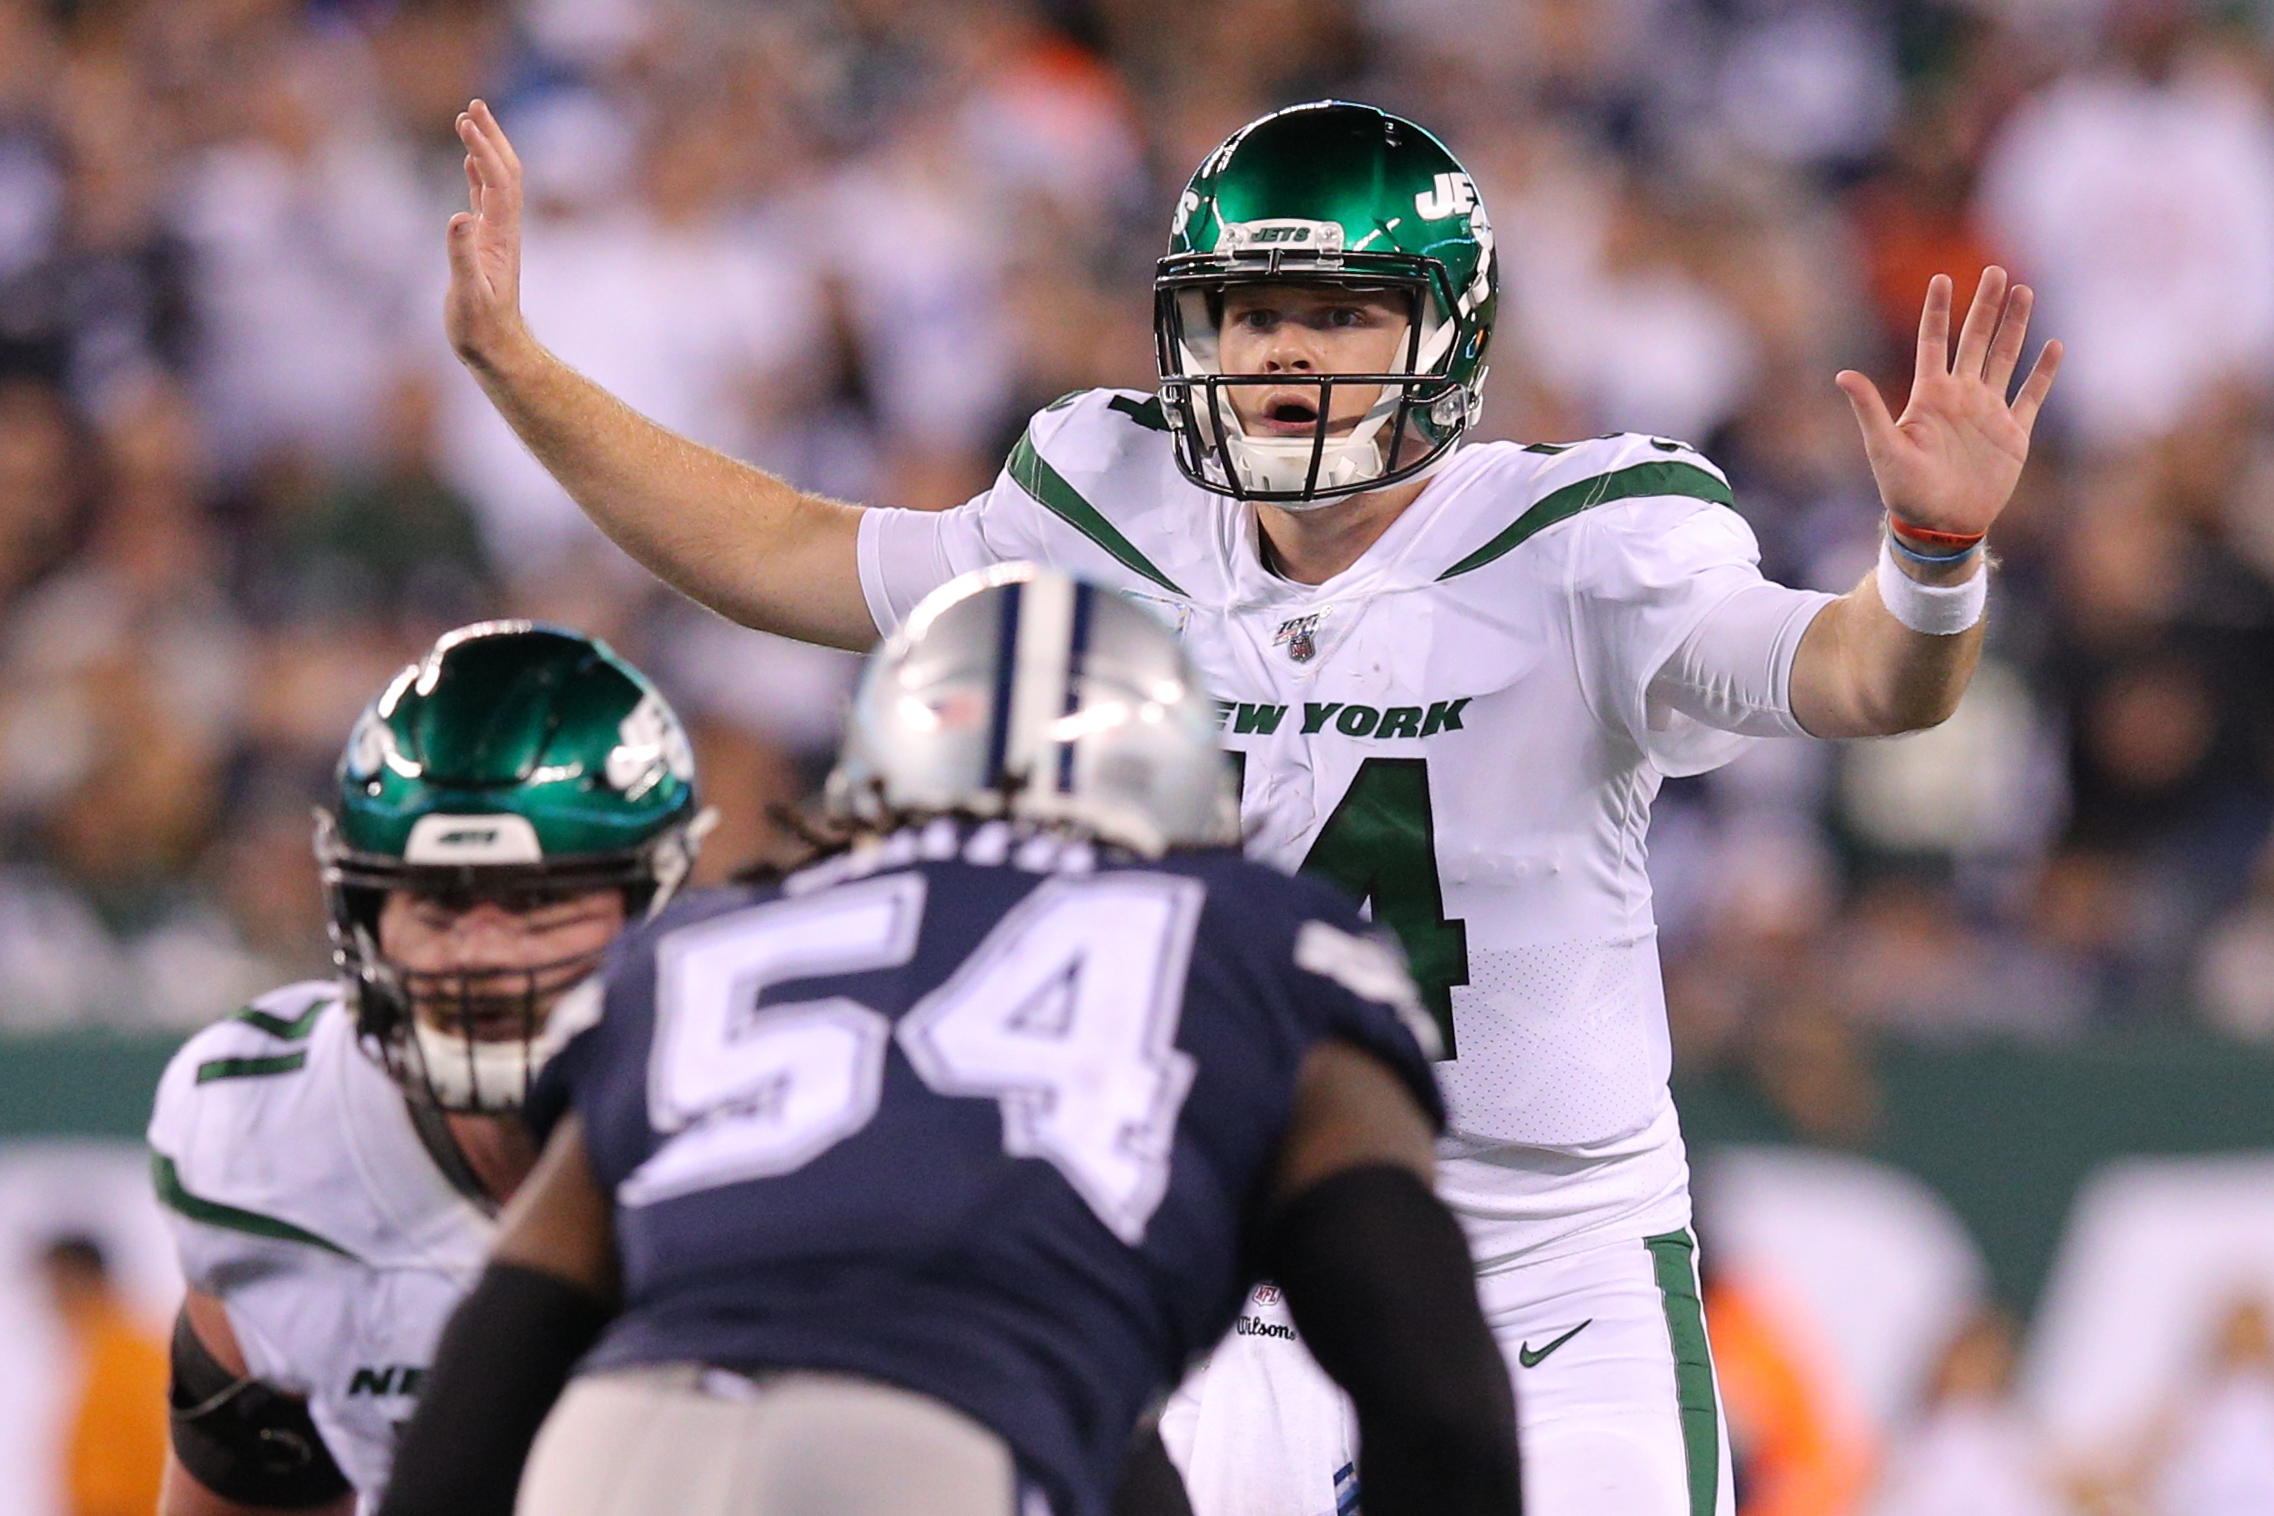 New York Jets quarterback Sam Darnold calls a play against the Dallas Cowboys during the fourth quarter at MetLife Stadium.